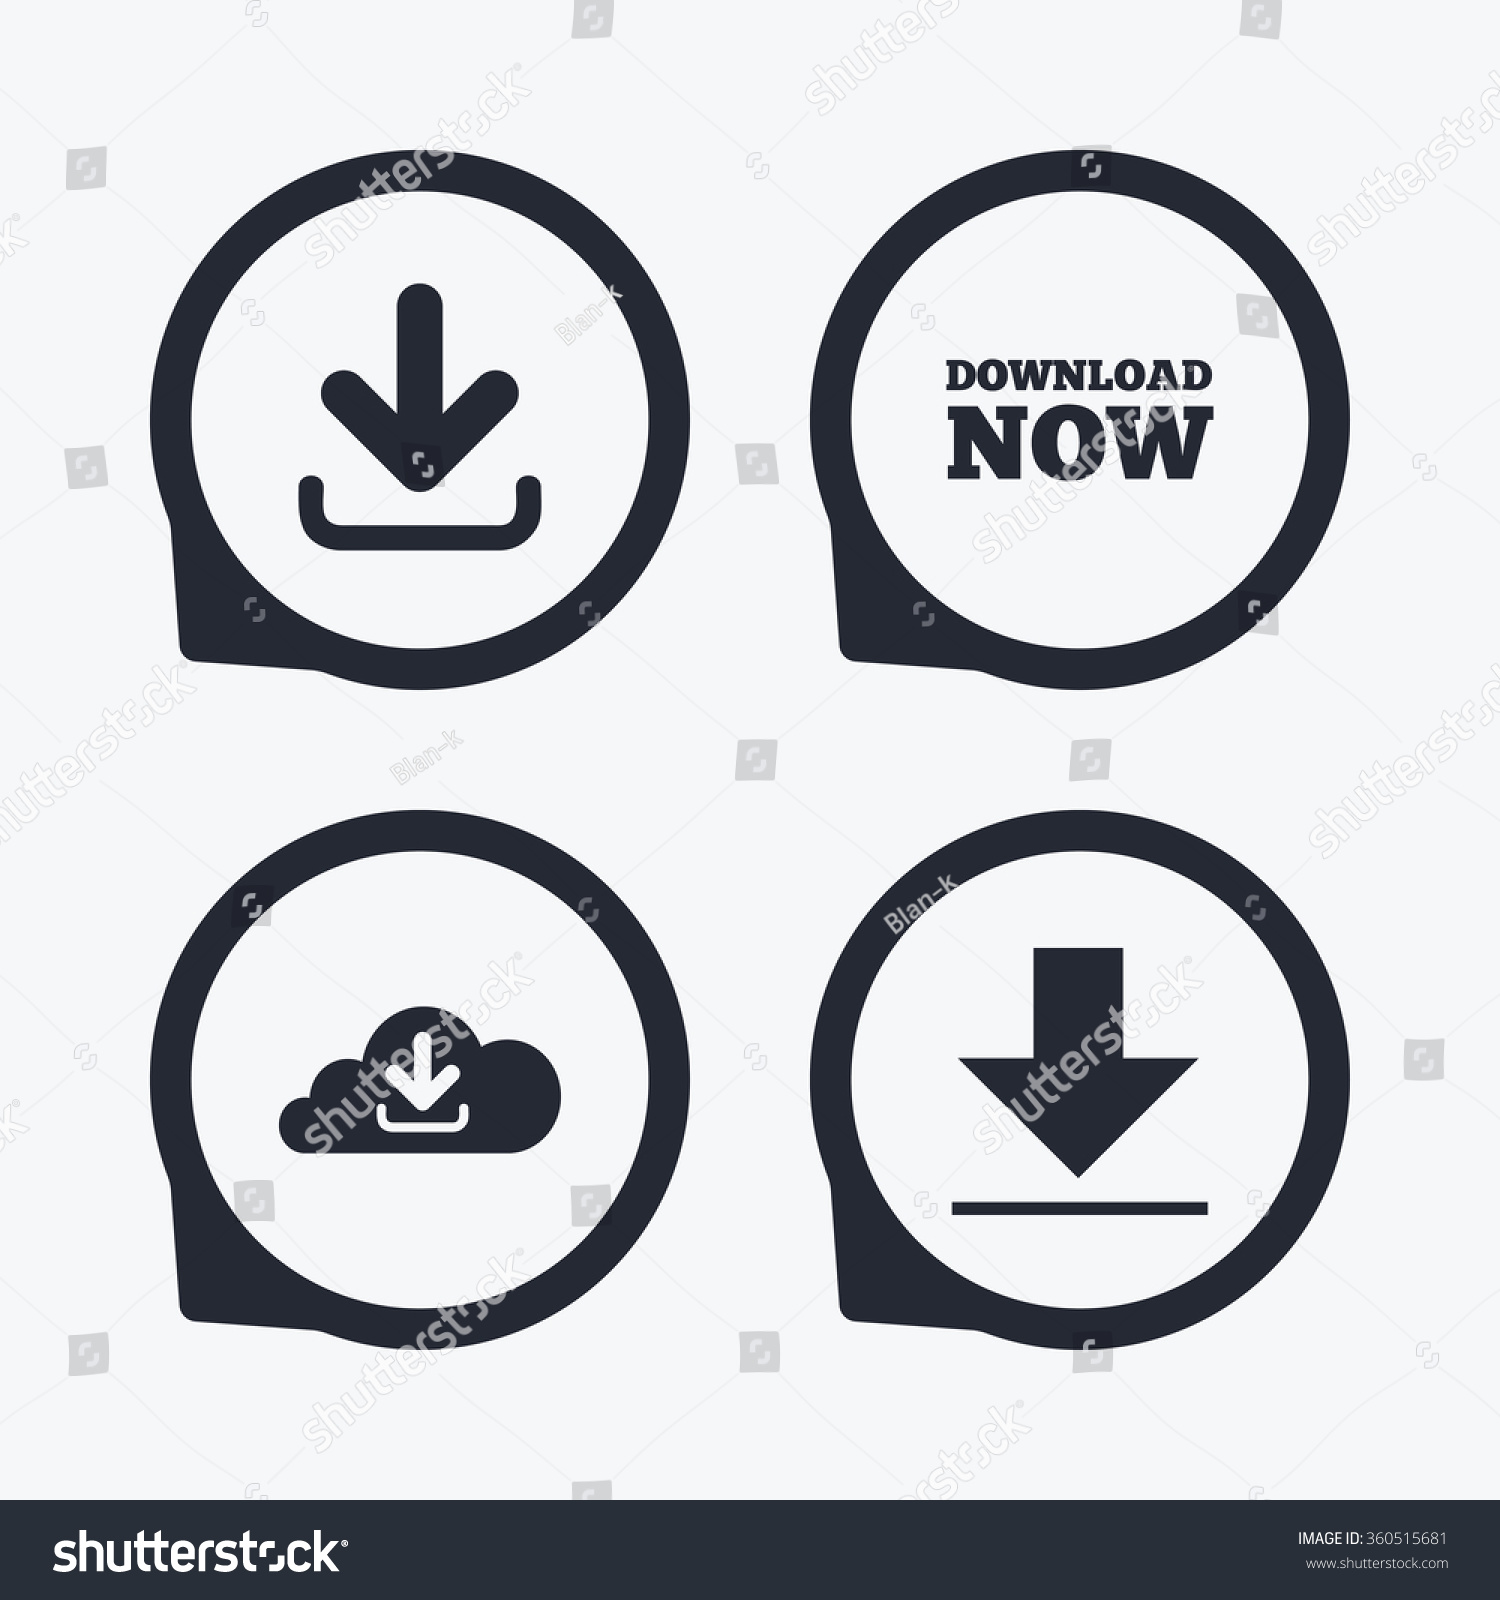 Download now icon upload cloud symbols stock illustration upload from cloud symbols receive data from a remote storage signs biocorpaavc Gallery